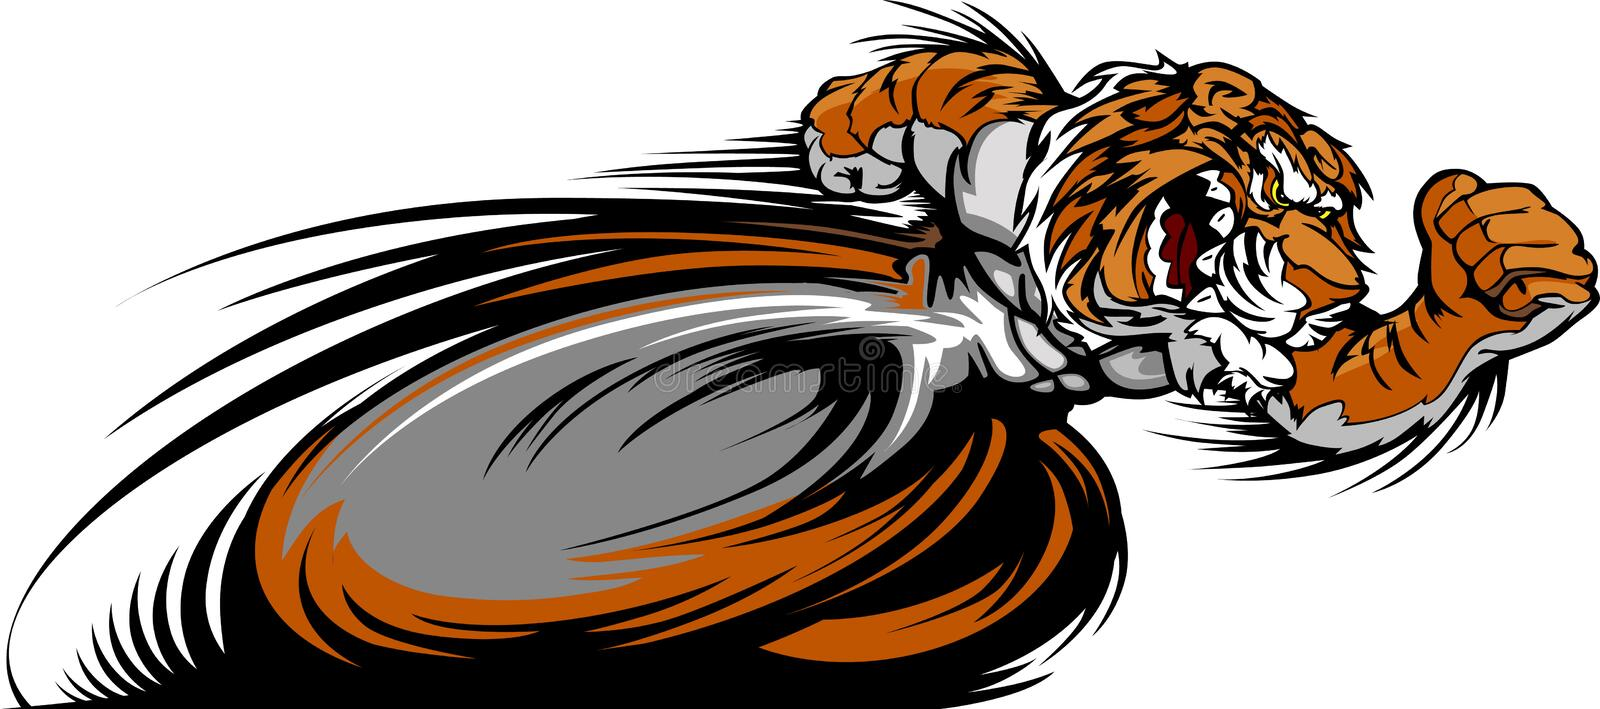 Download Racing Tiger Mascot Graphic Image Stock Vector - Illustration of team, sports: 22559639